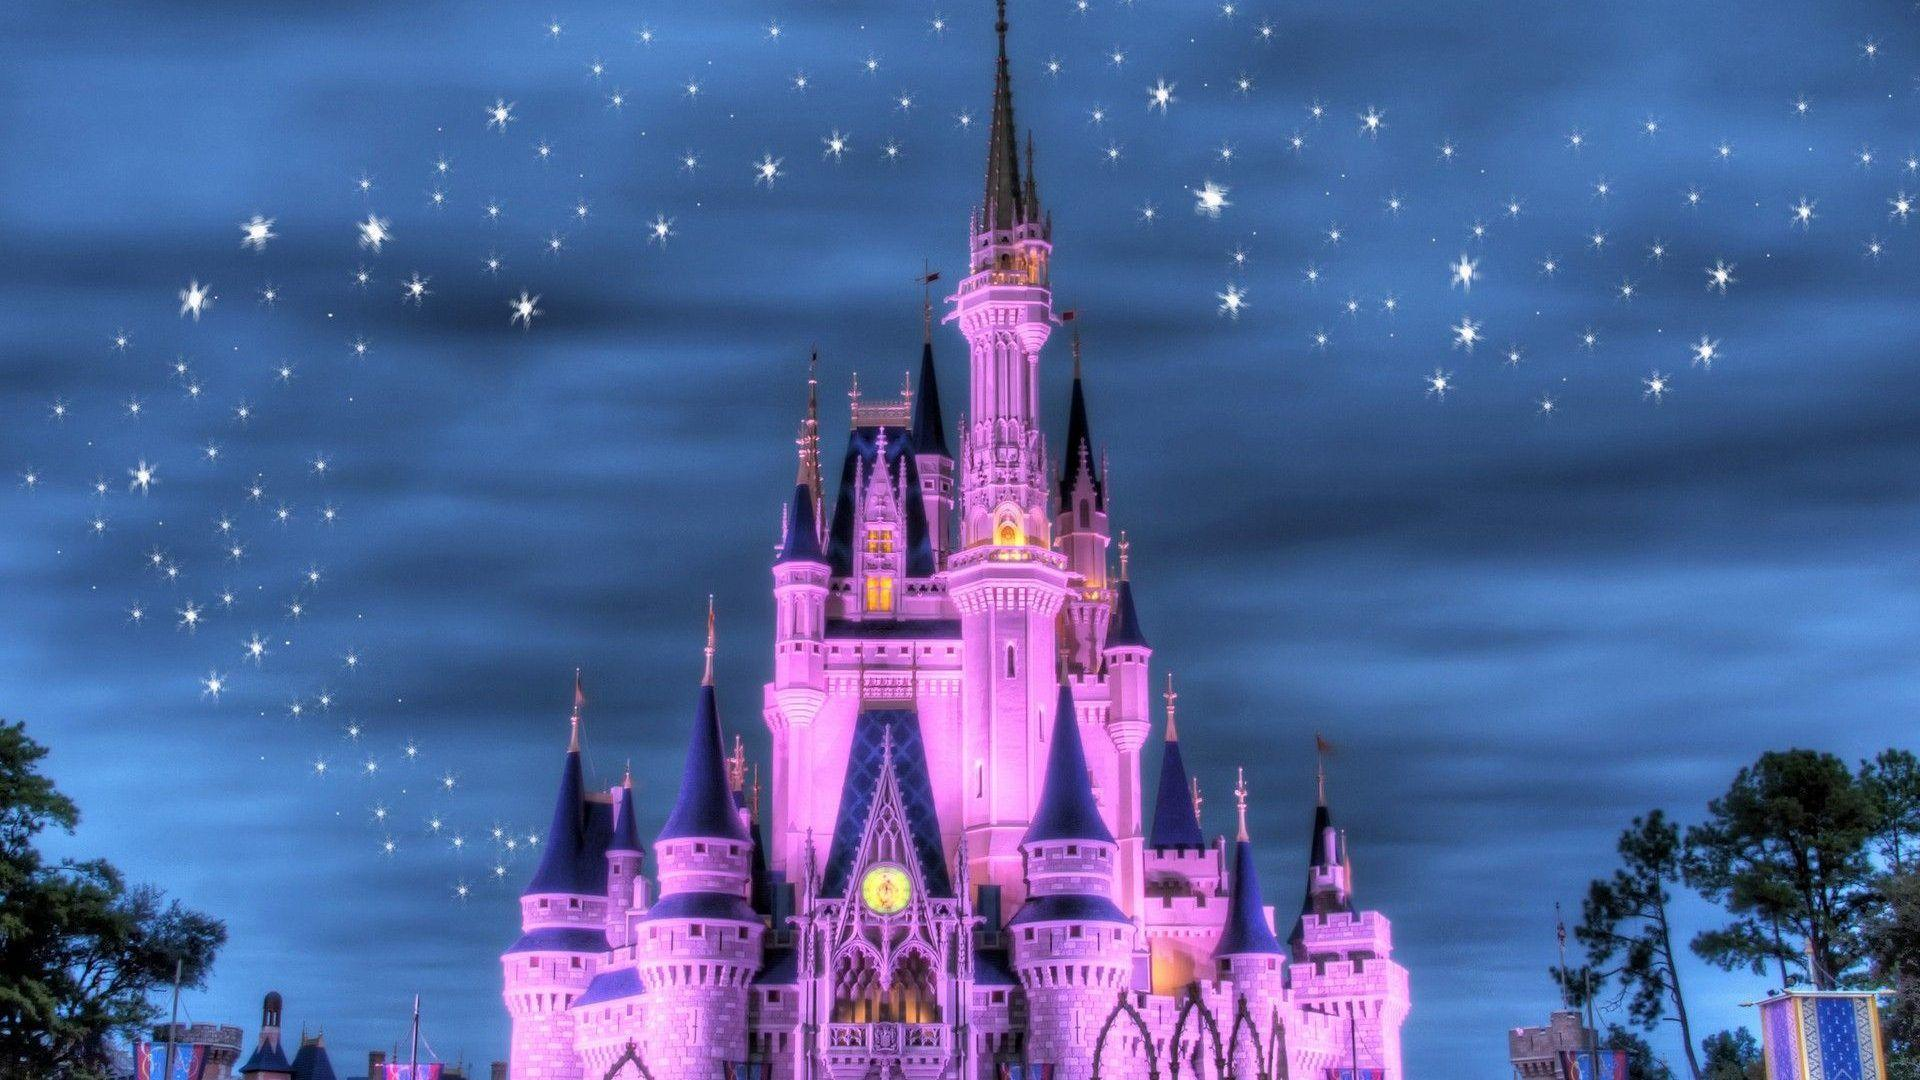 Disney Castle Wallpapers HD - wallpaper.wiki